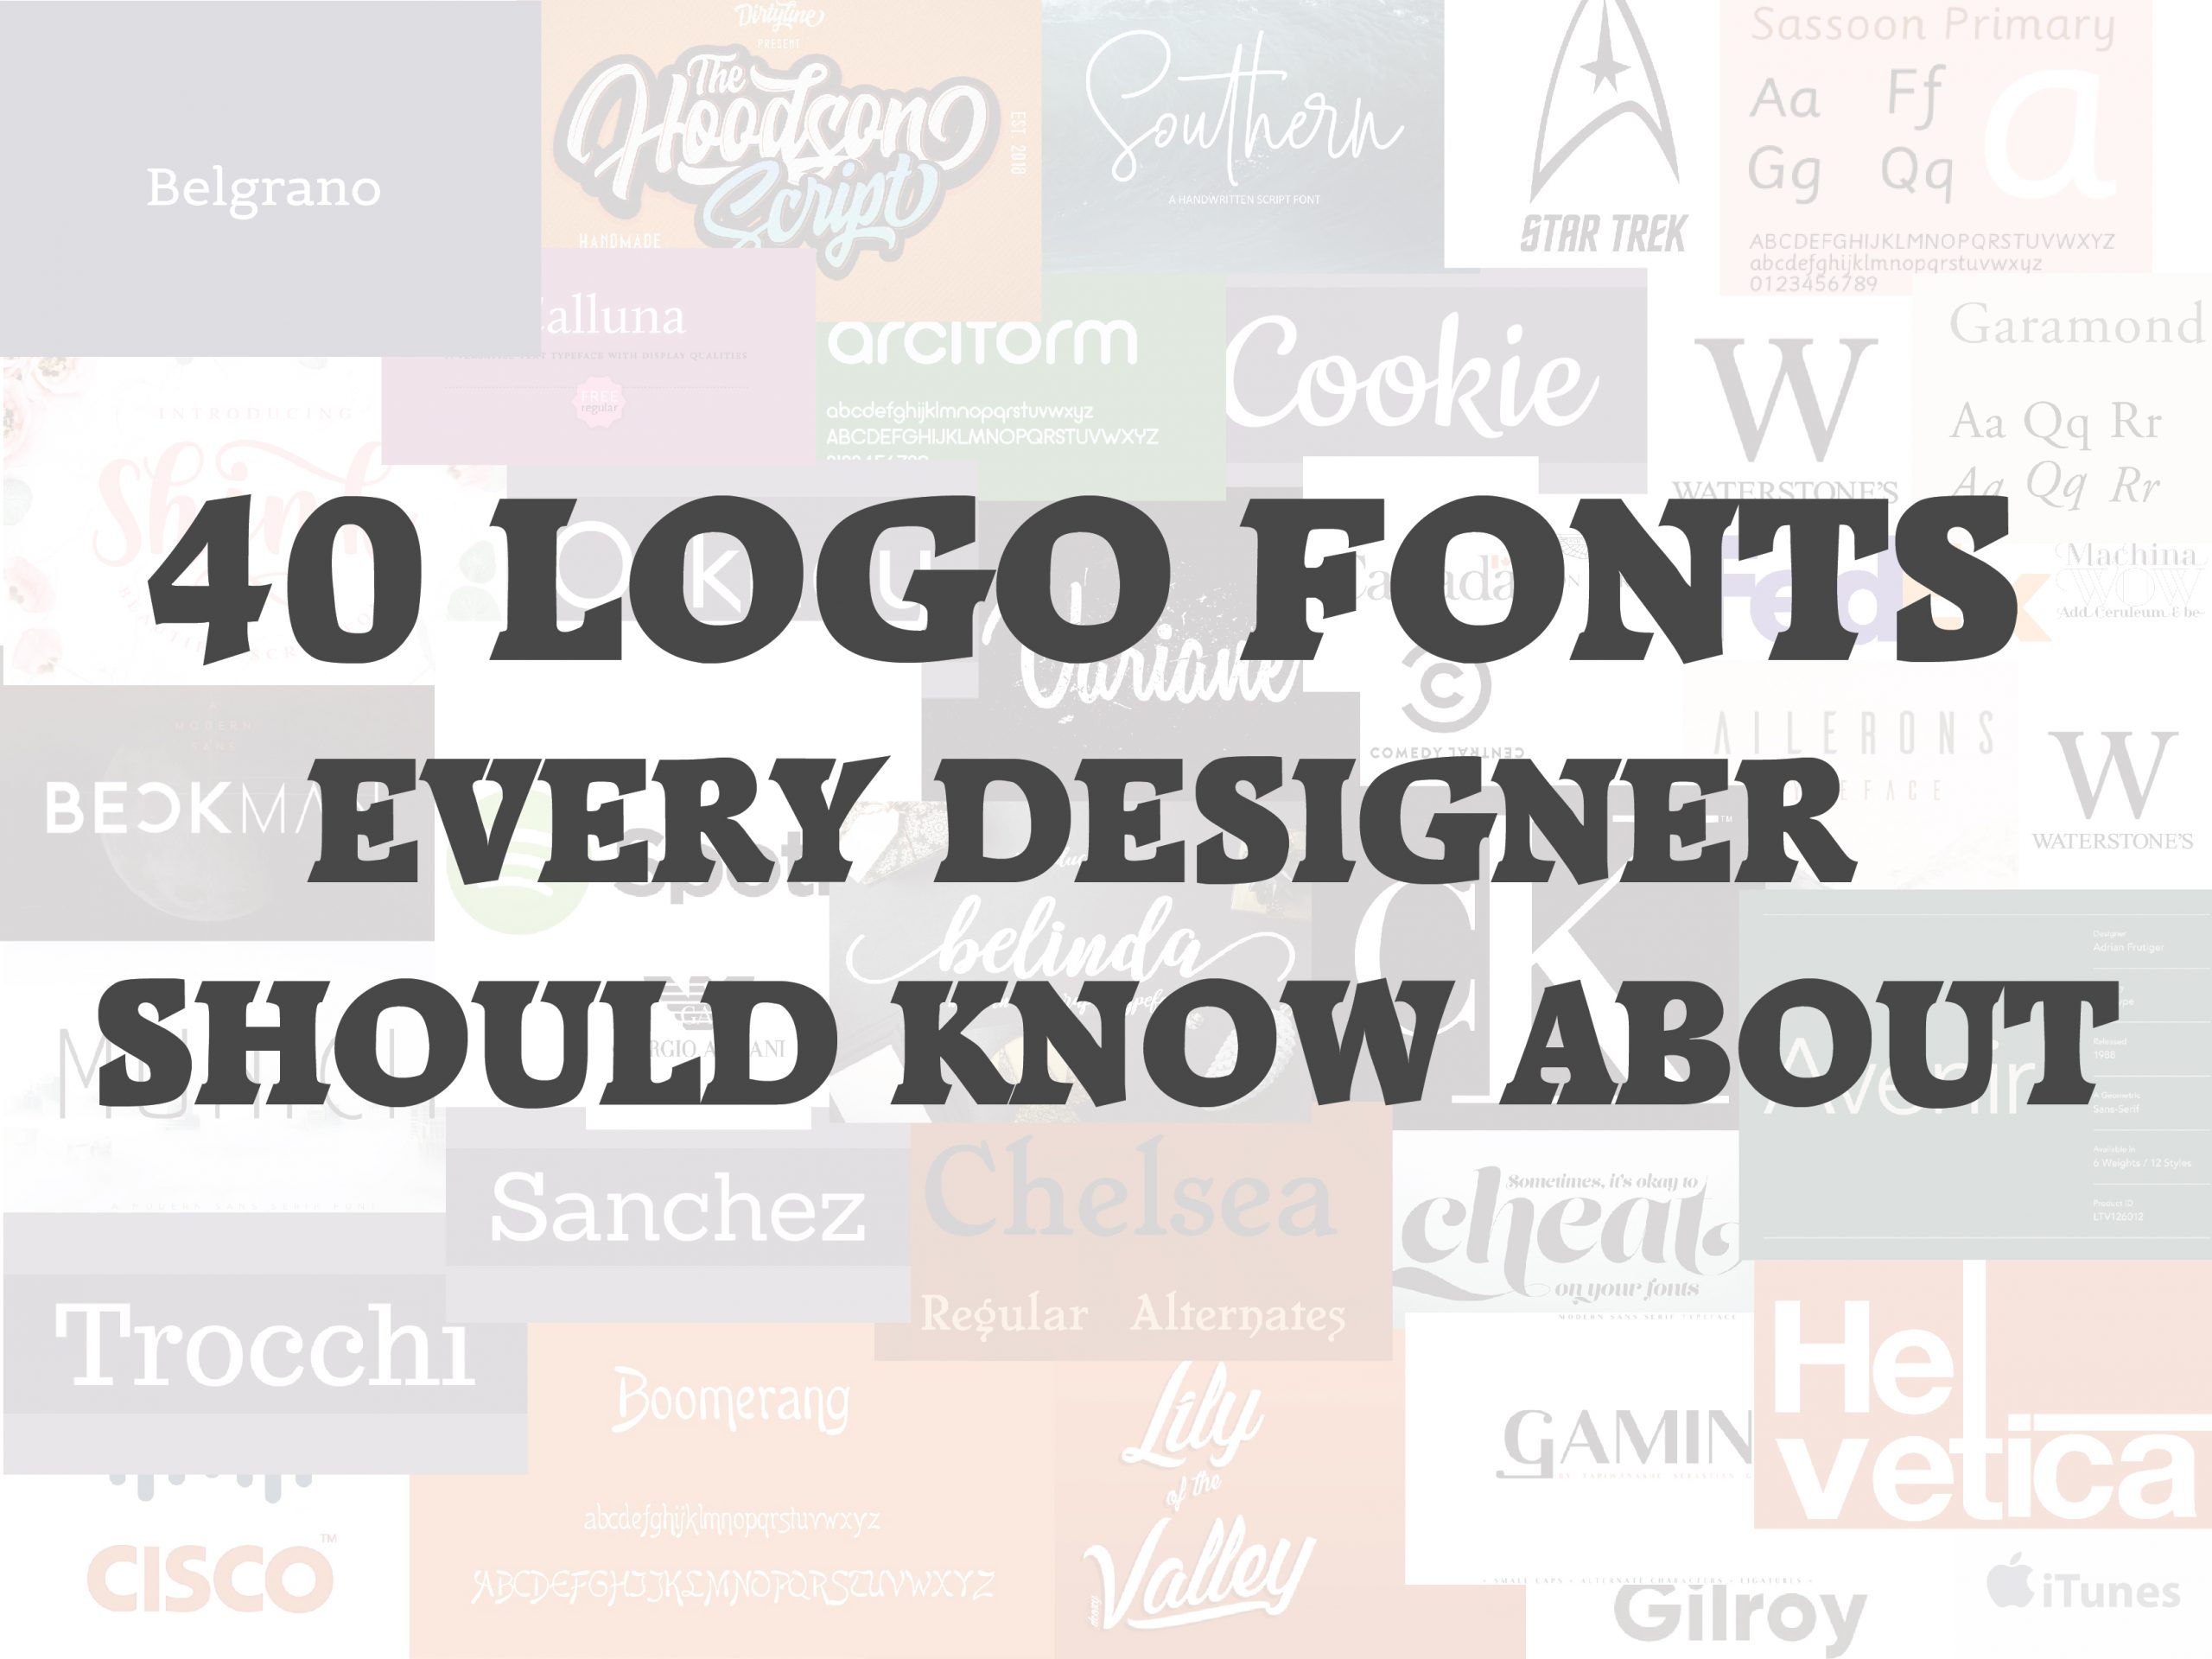 40 Logo Fonts Every Designer Should Know About